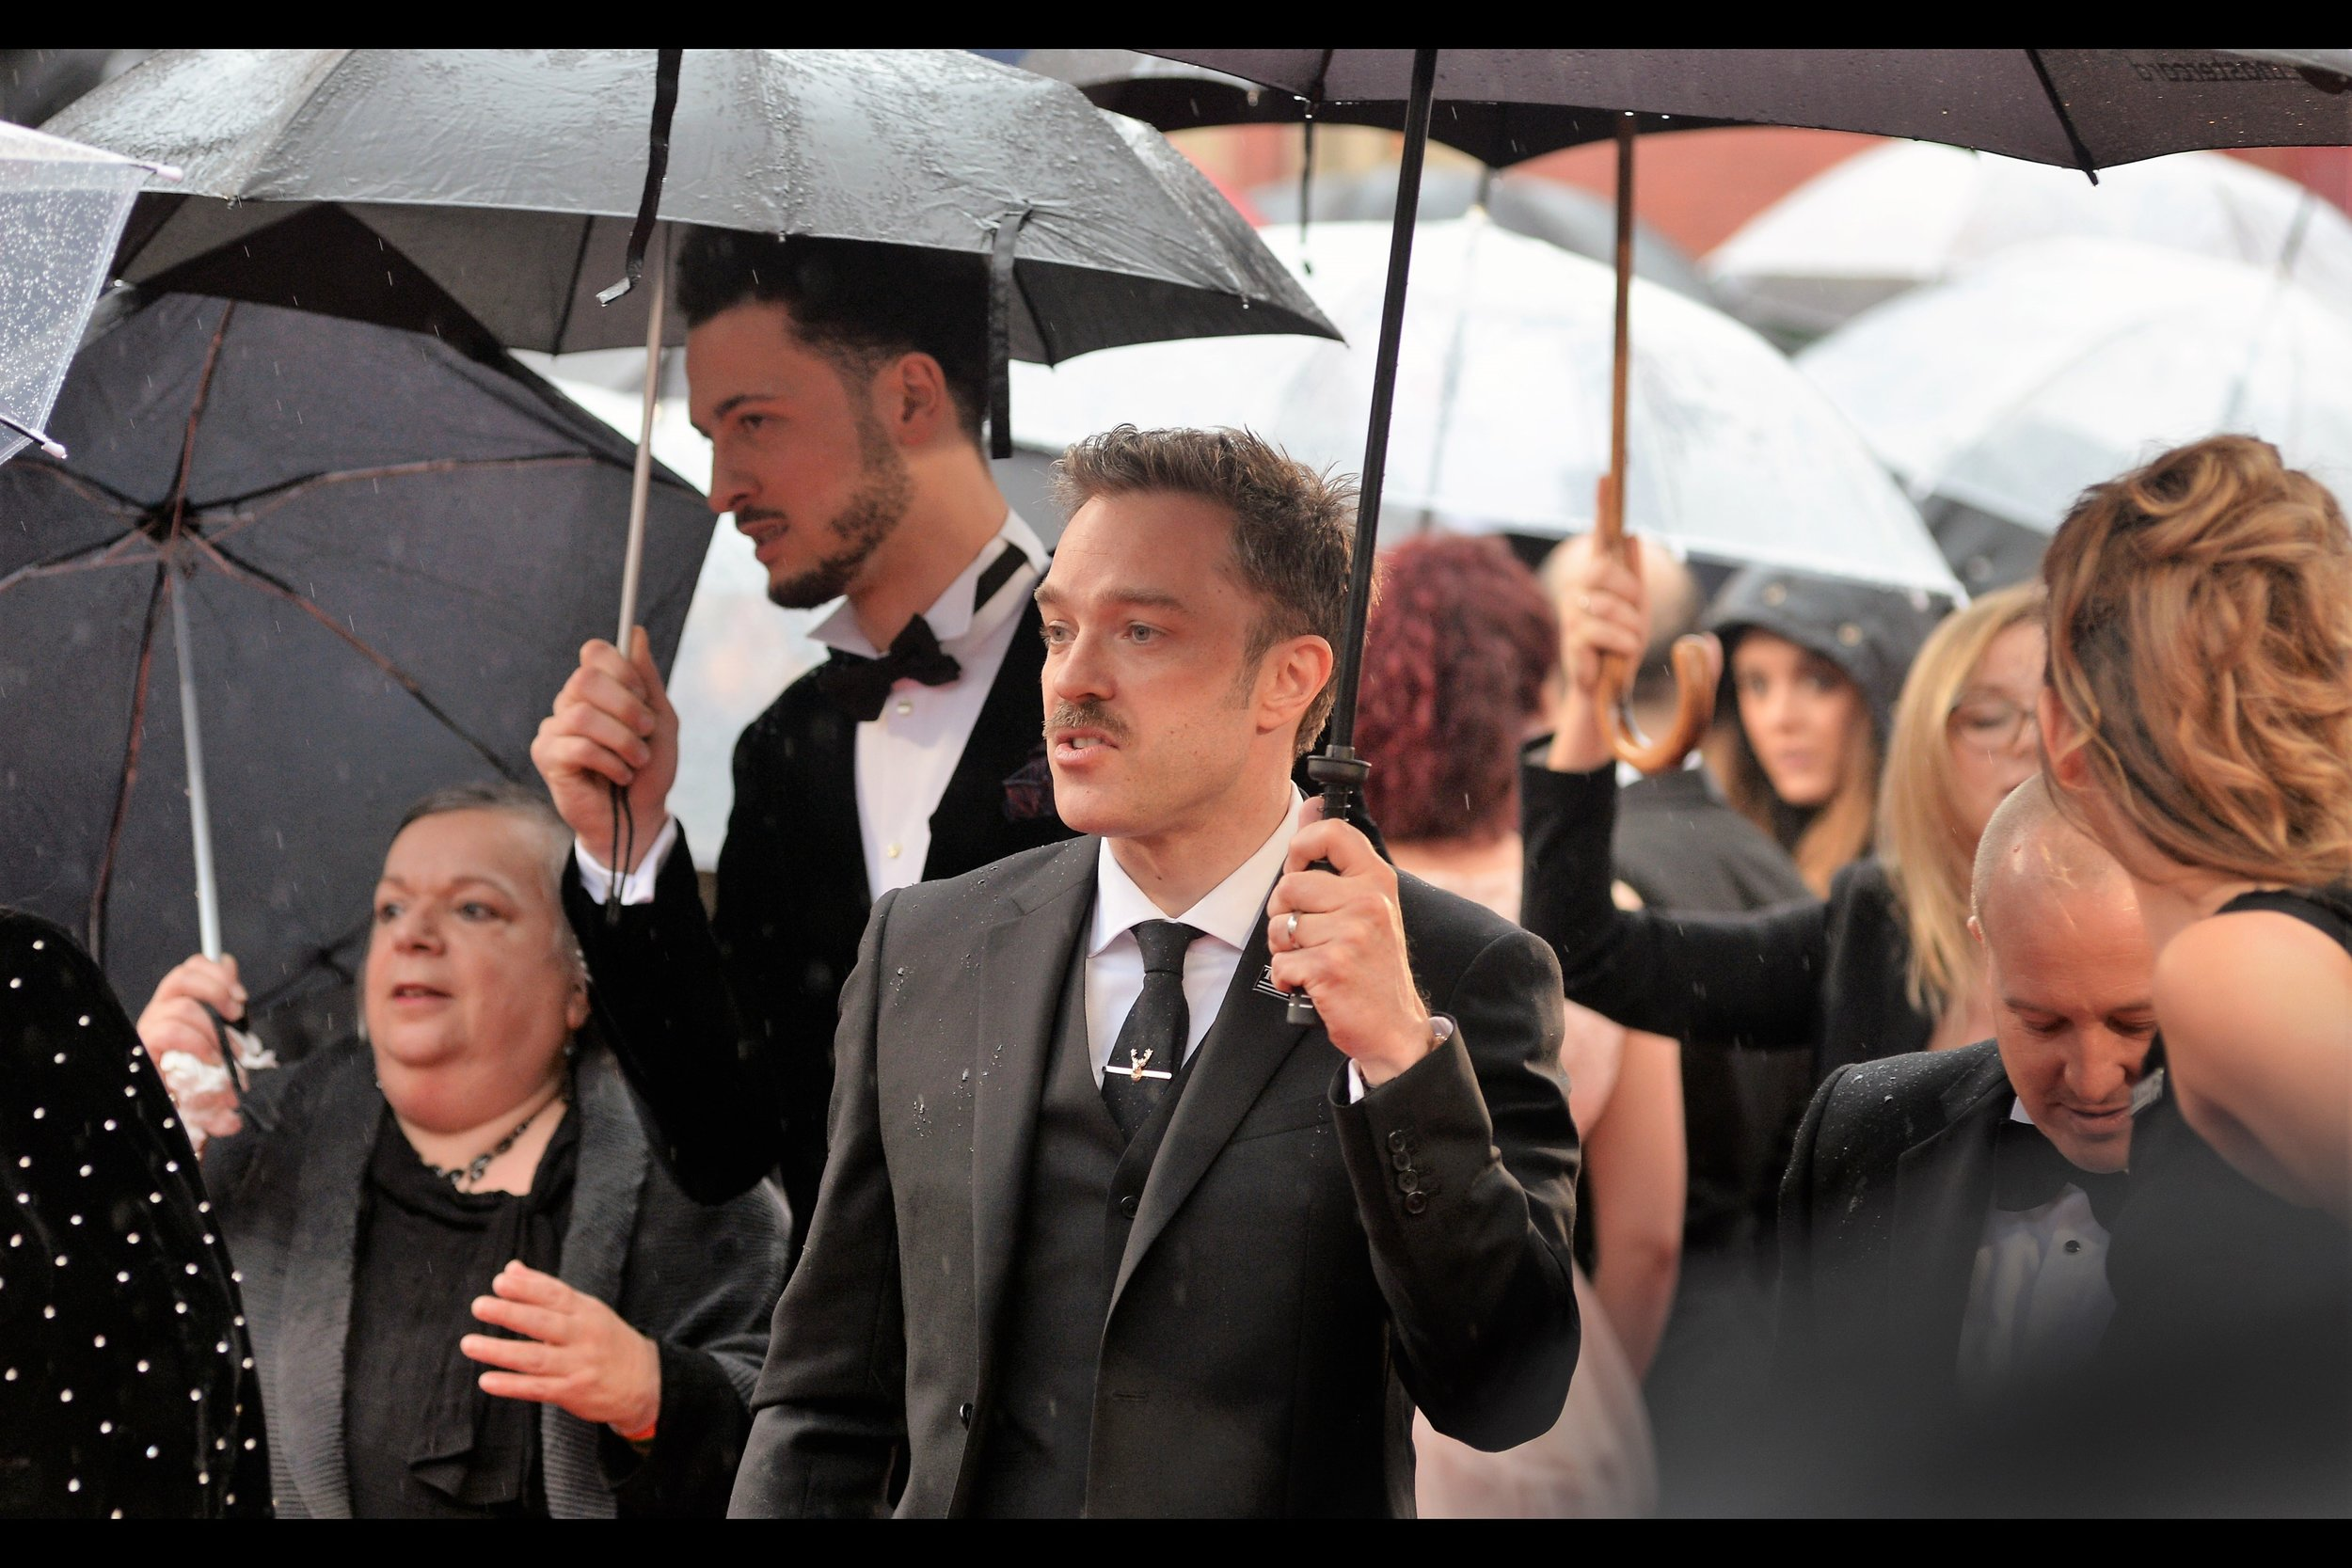 Added later : still unidentified, but I'm doubling down on Man With Moustache Holding Umbrella And Semi-Excitable Woman In Background.